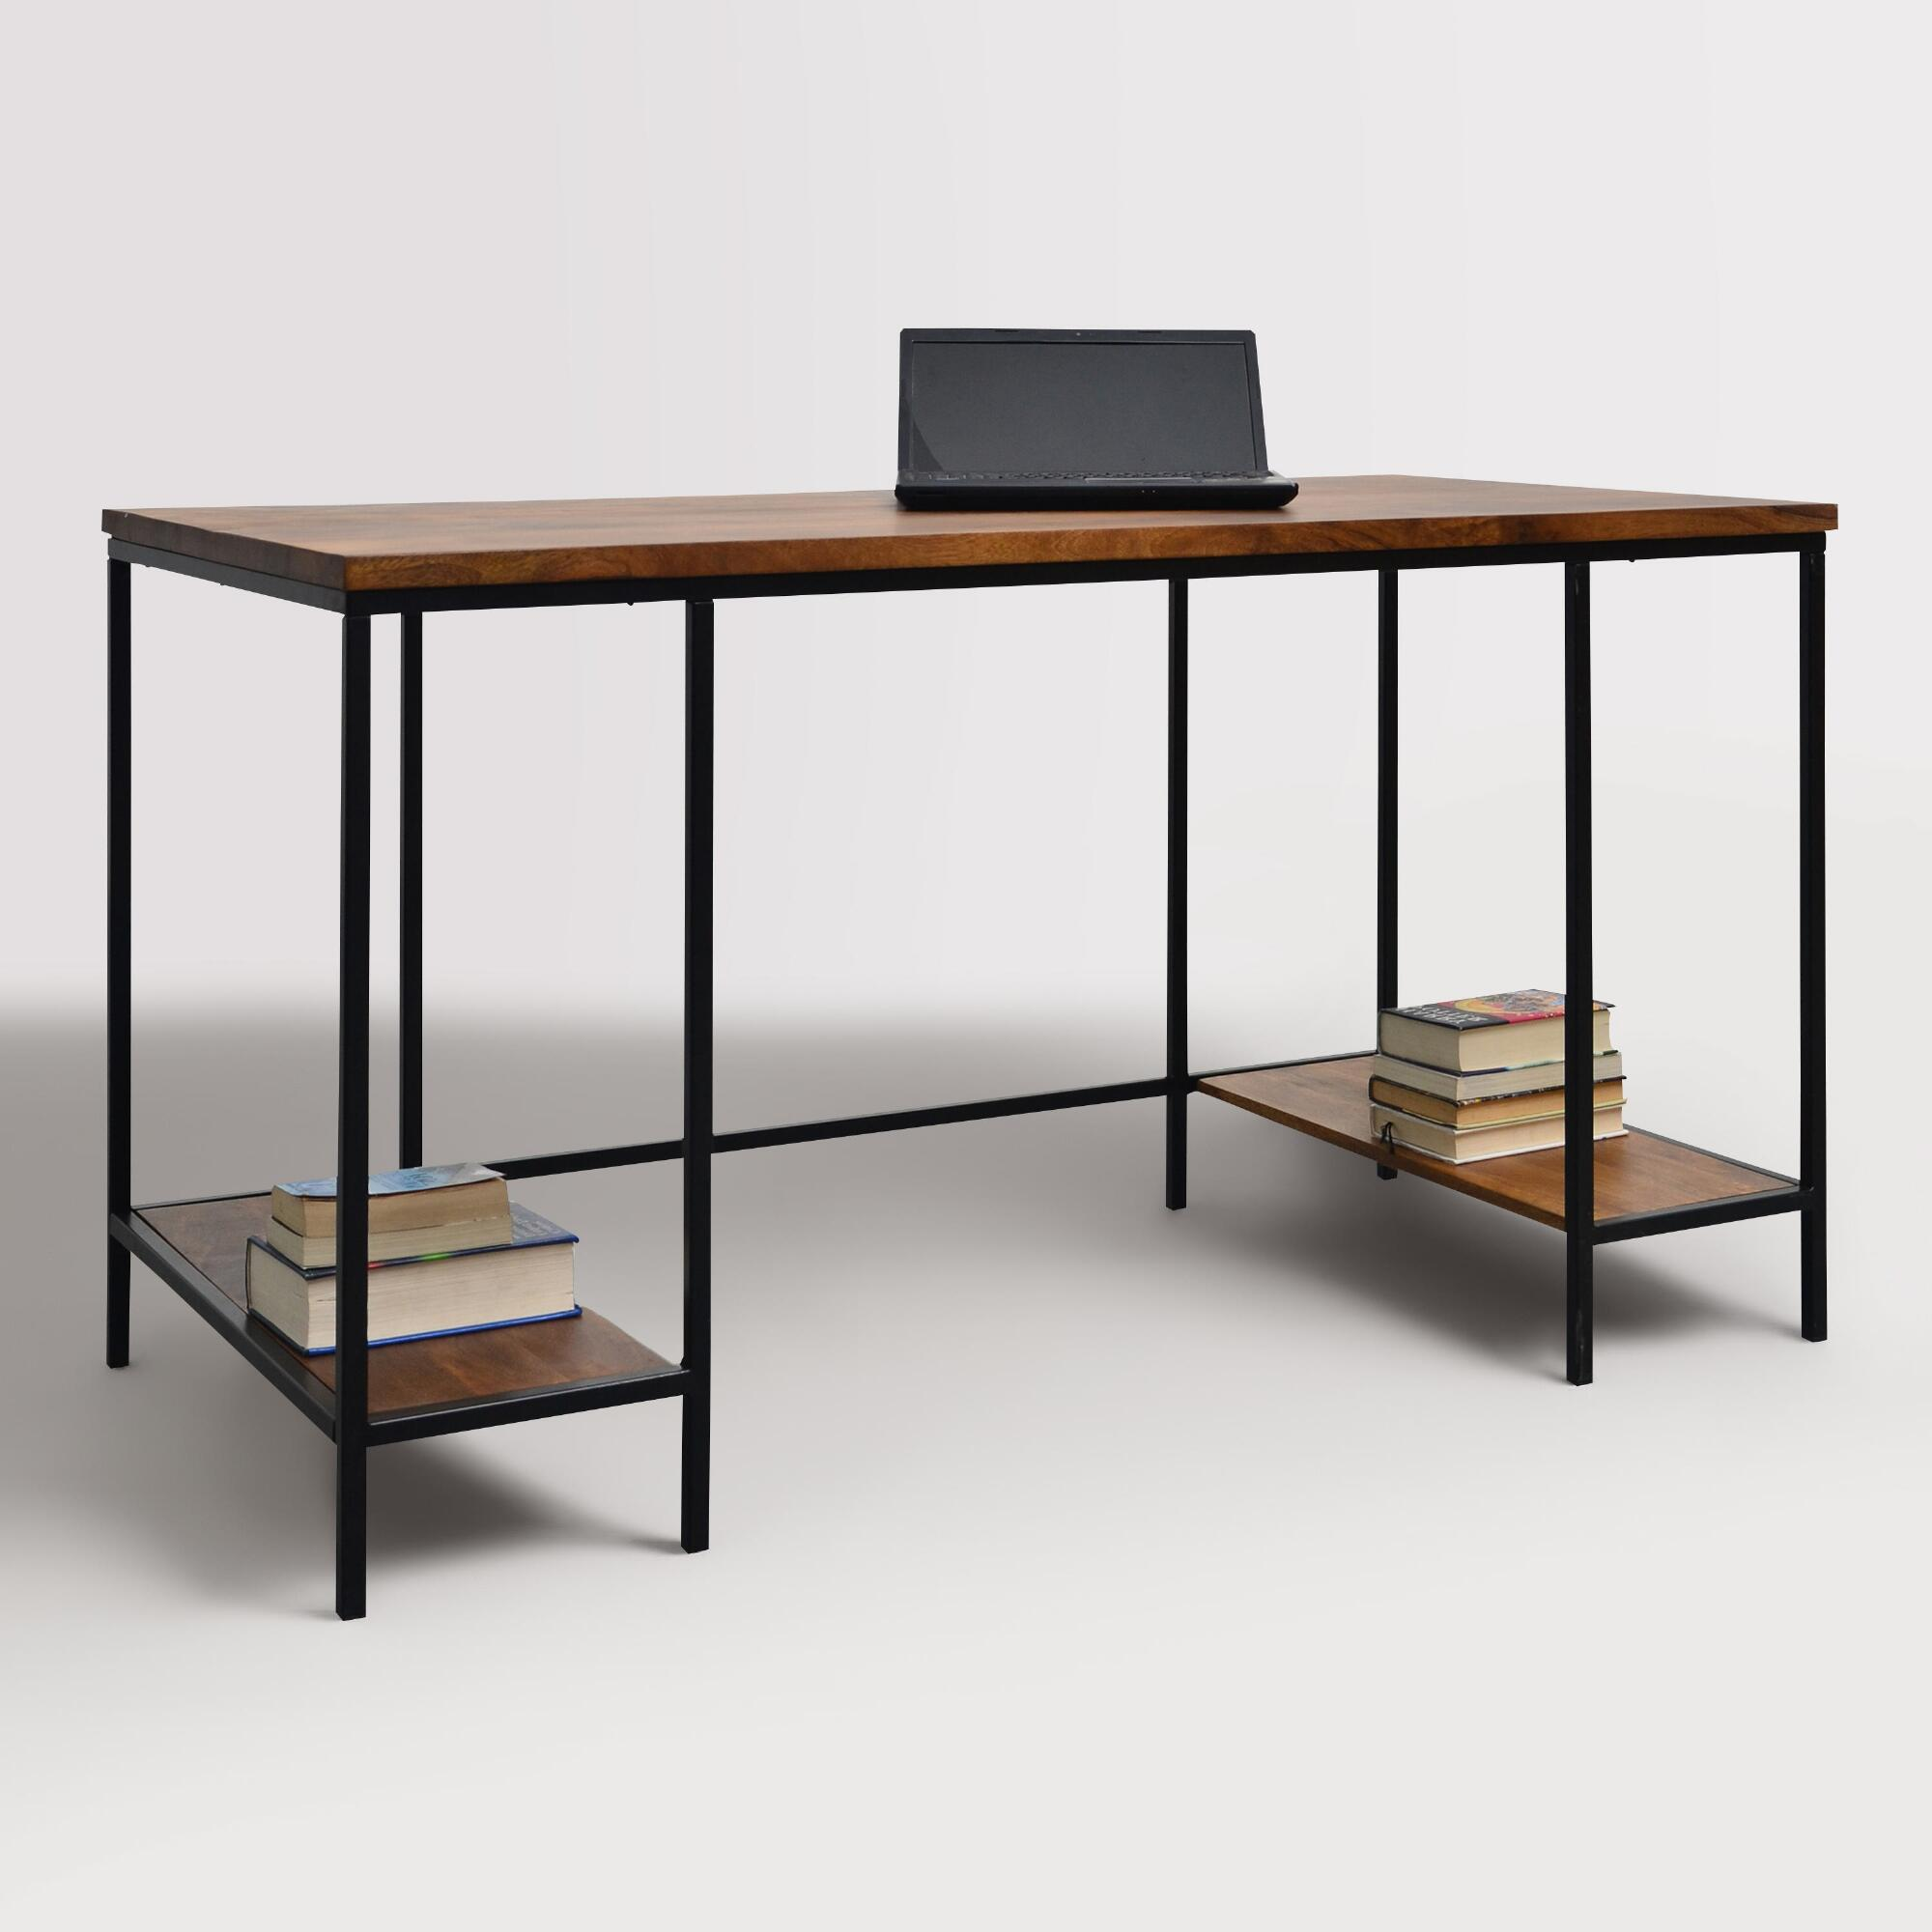 Iron and wood furniture - Wood And Metal Williard Extra Long Desk